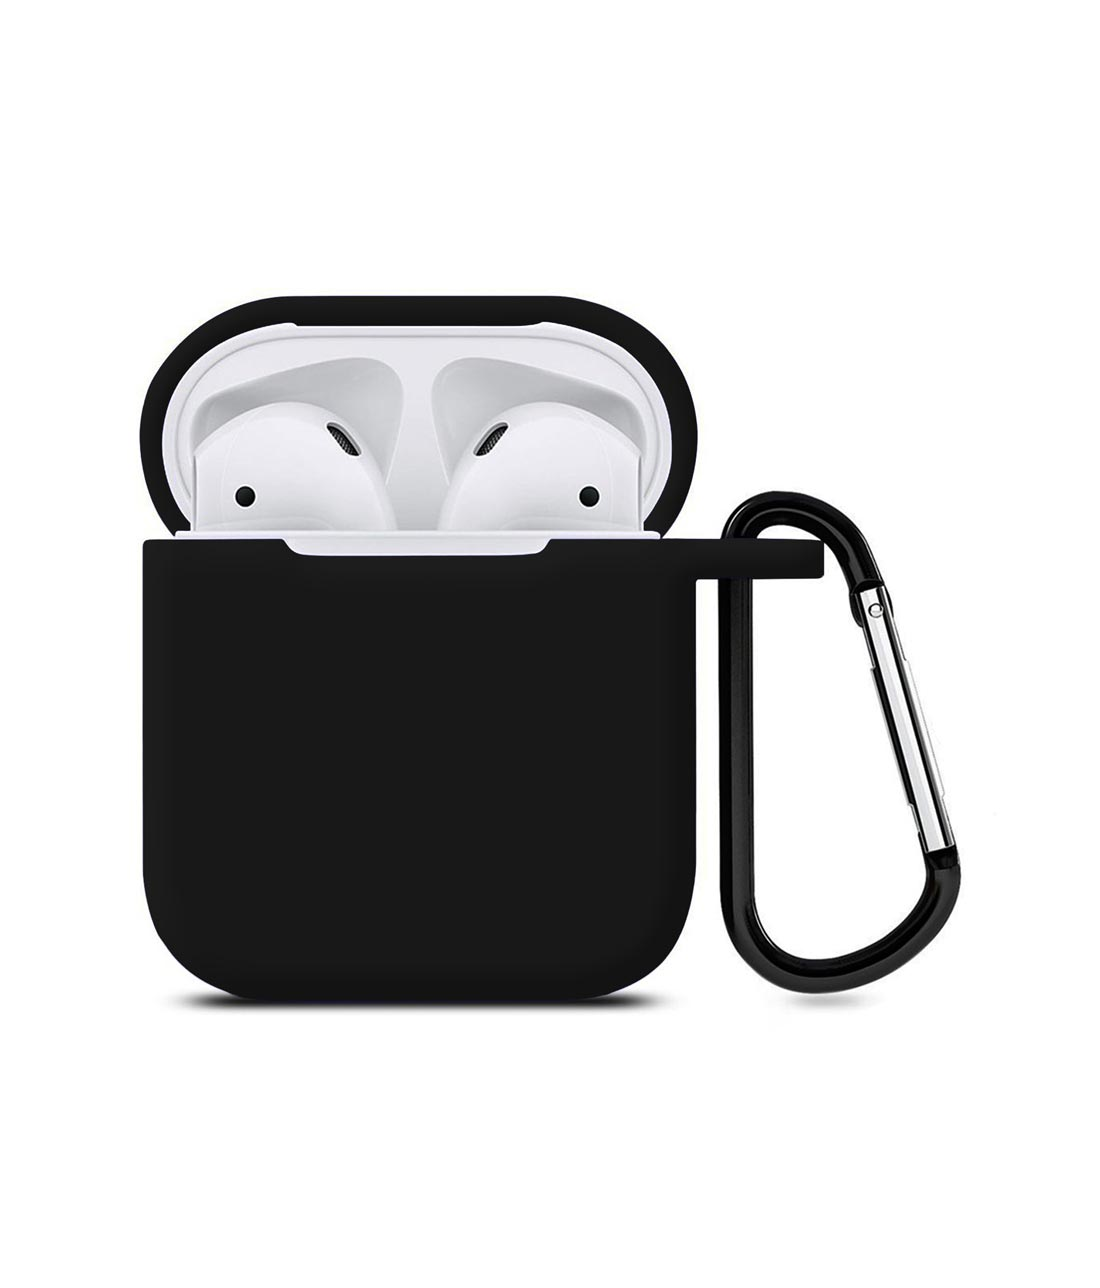 Silicone Case Midnight Black - AirPods Case